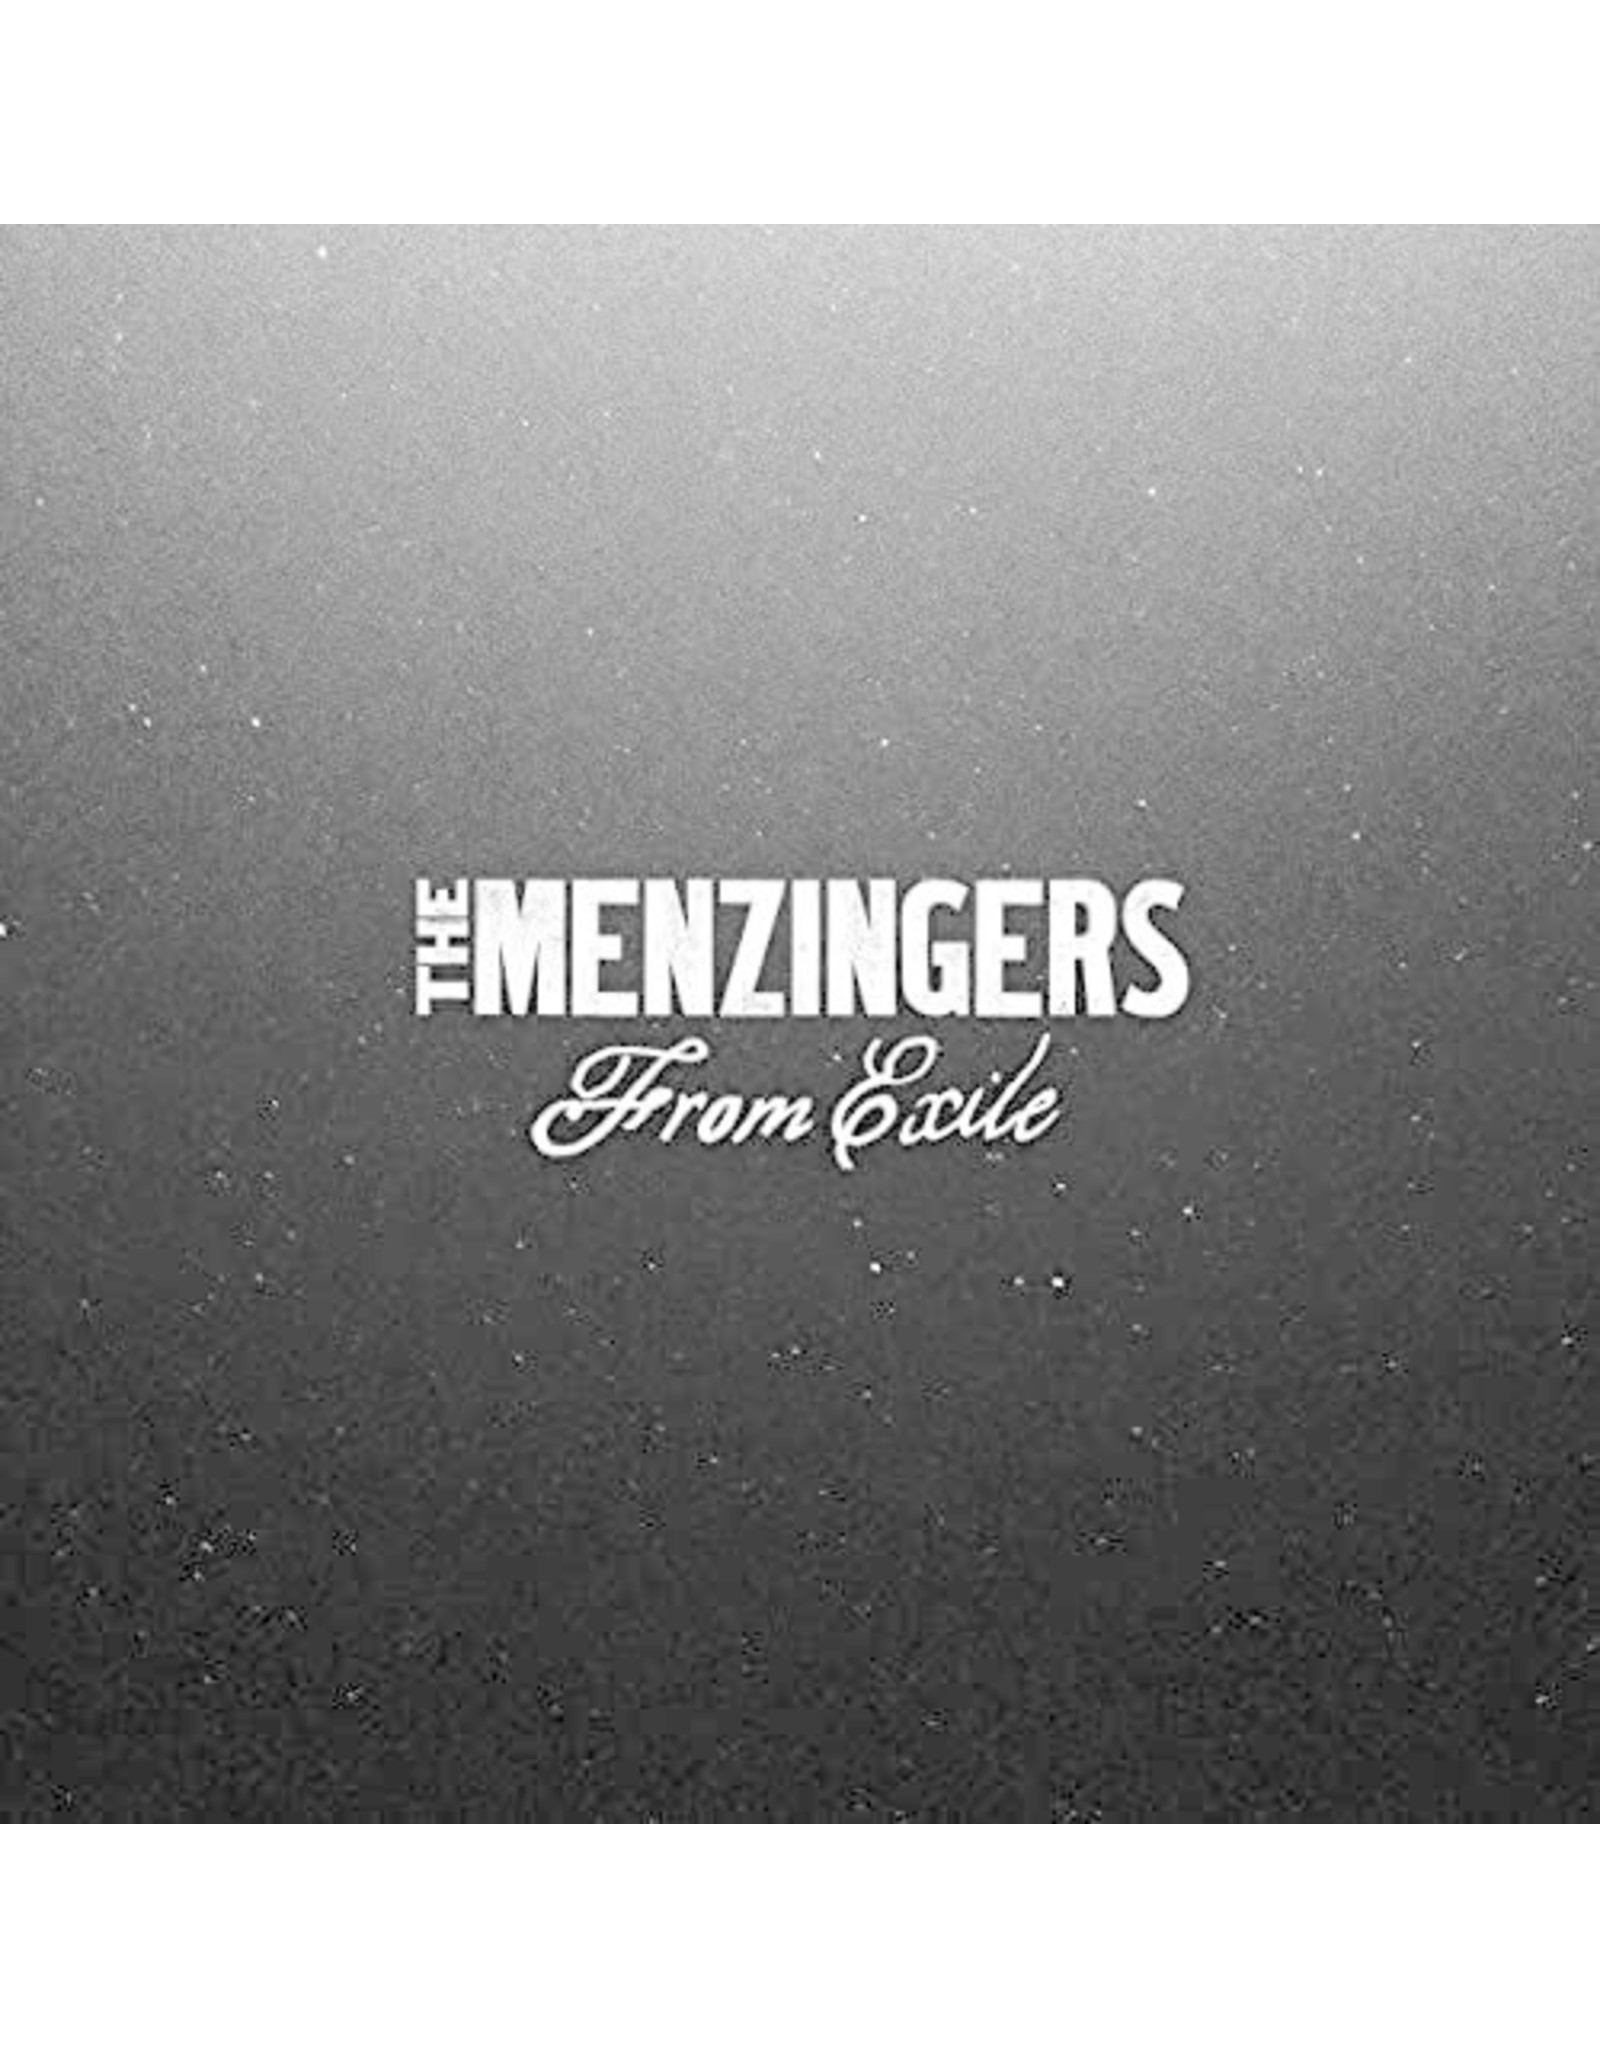 Menzingers / From Exile